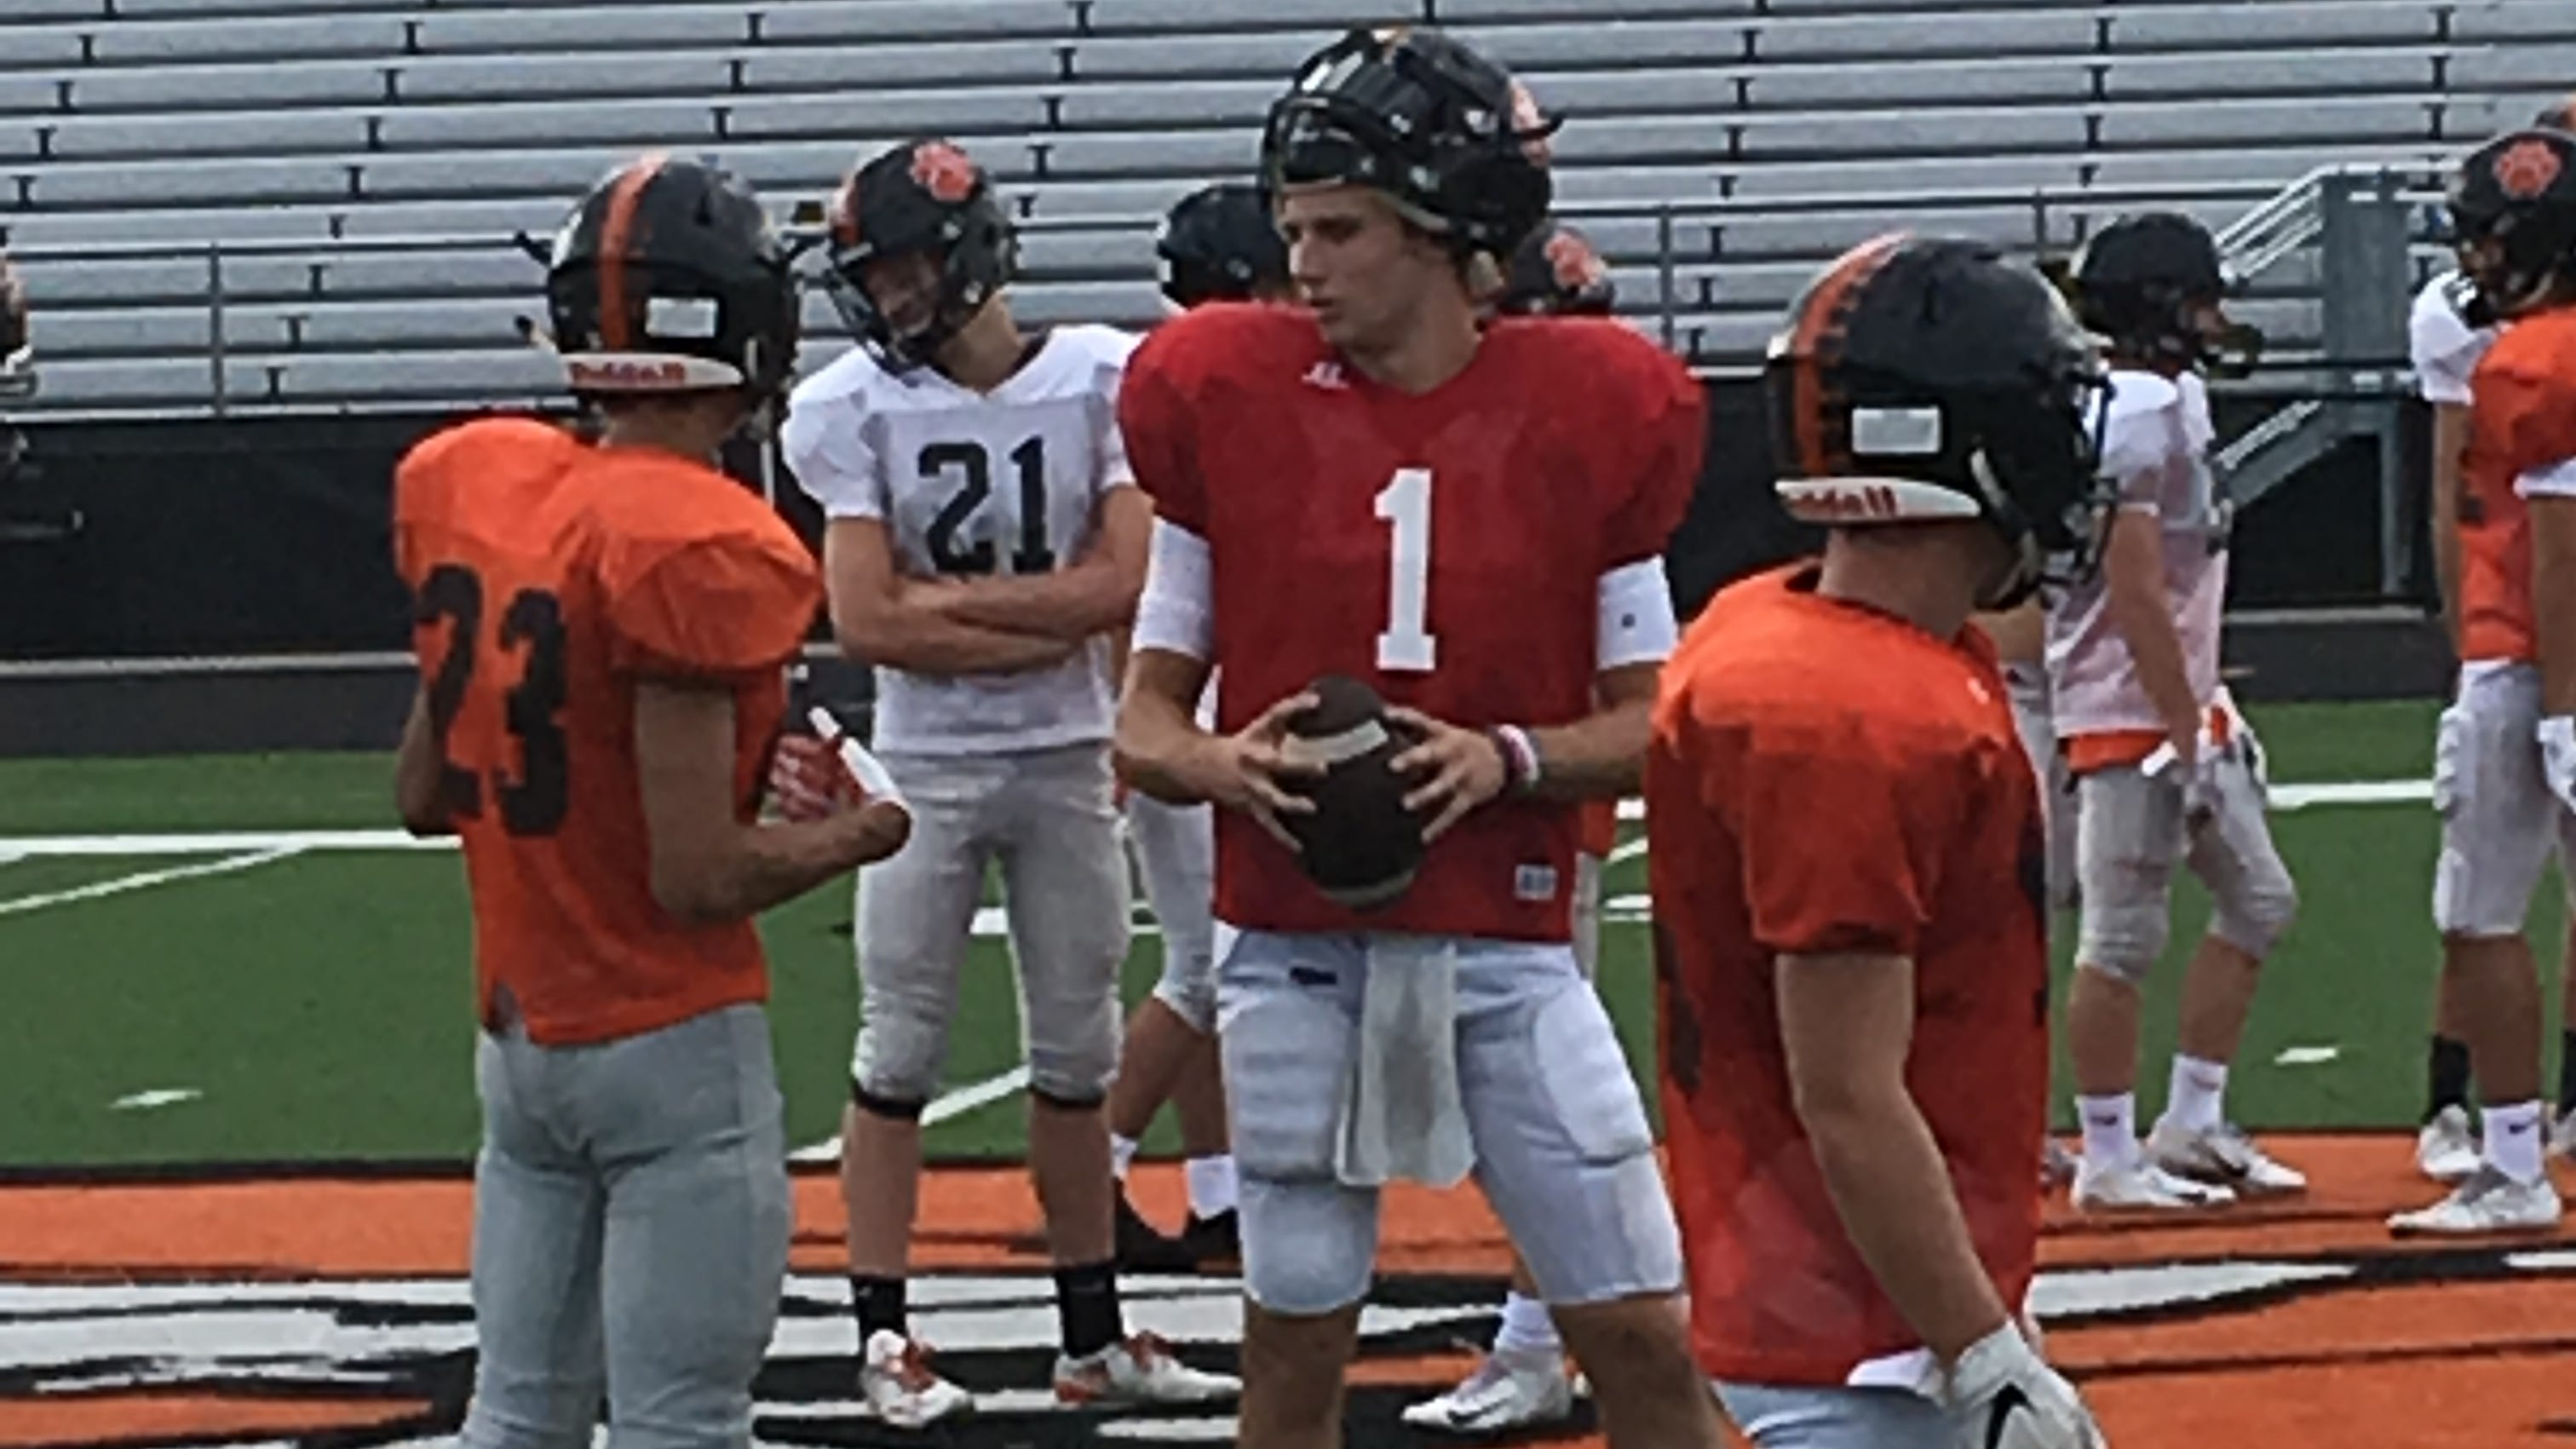 Brighton quarterback Will Jontz has offers from Butler, Davenport, and Olivet Nazarene, but Michigan State now is showing interest.